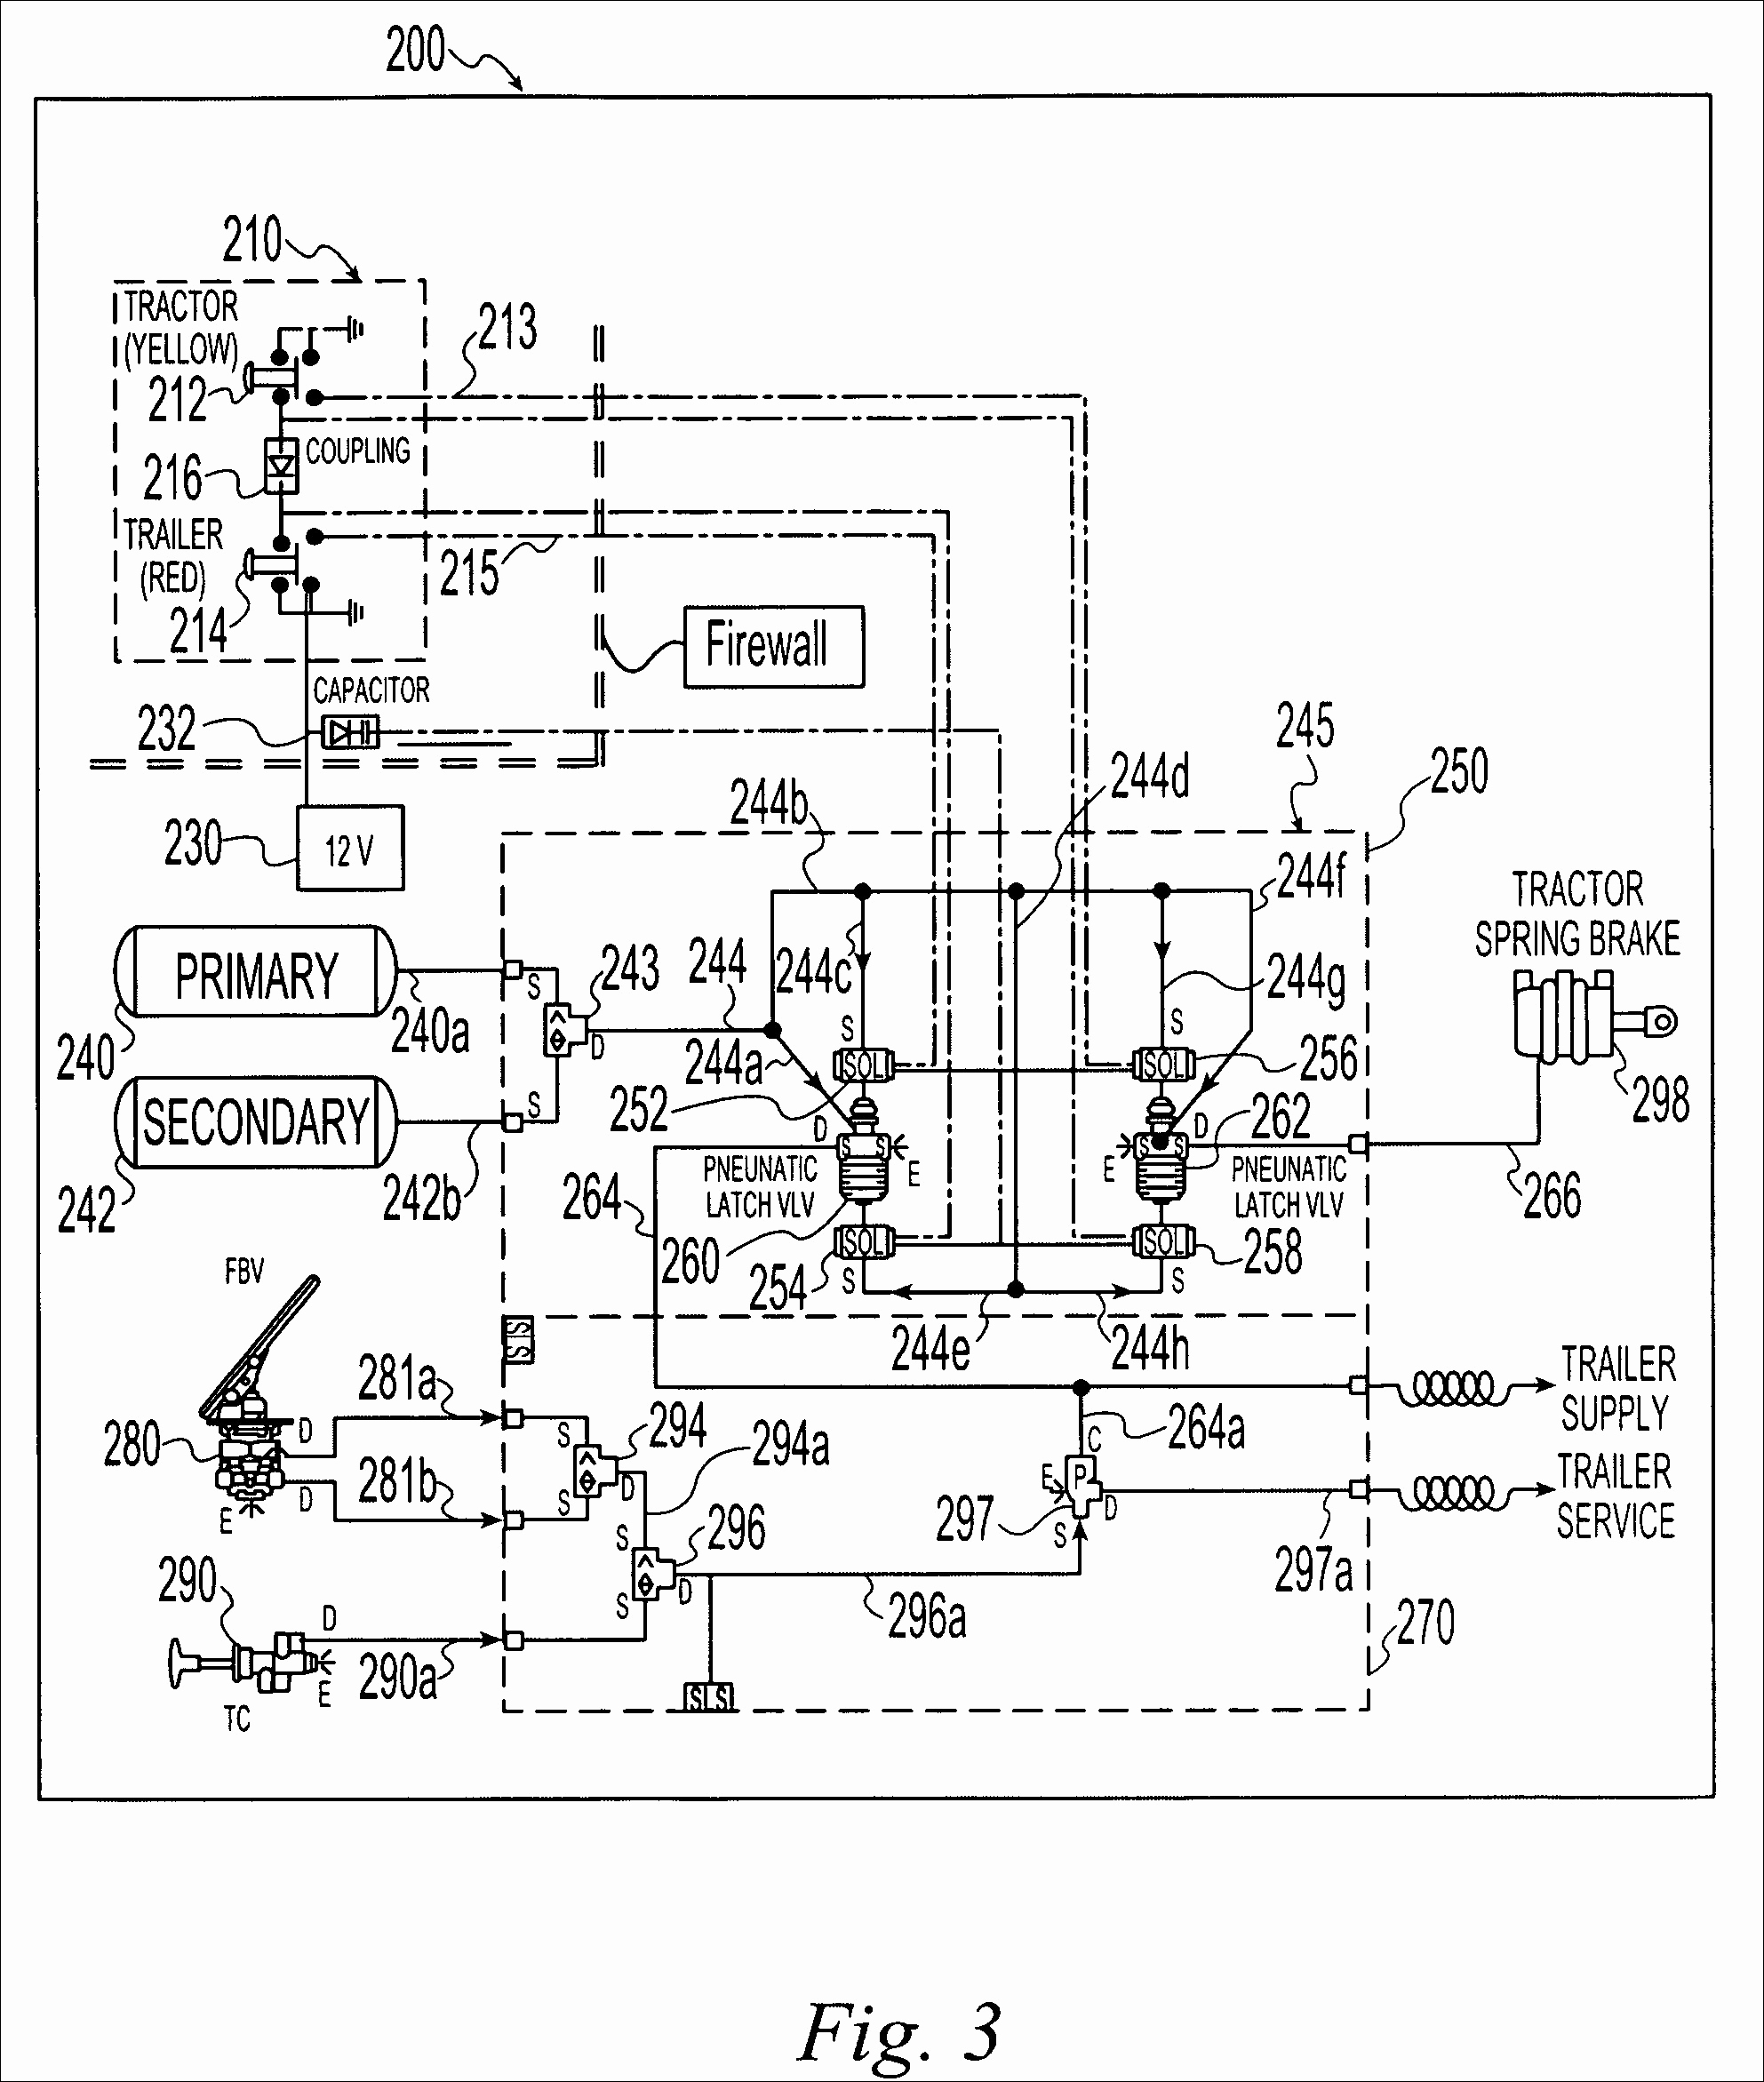 Diagram  1986 Chevrolet Silverado Wiring Diagram Full